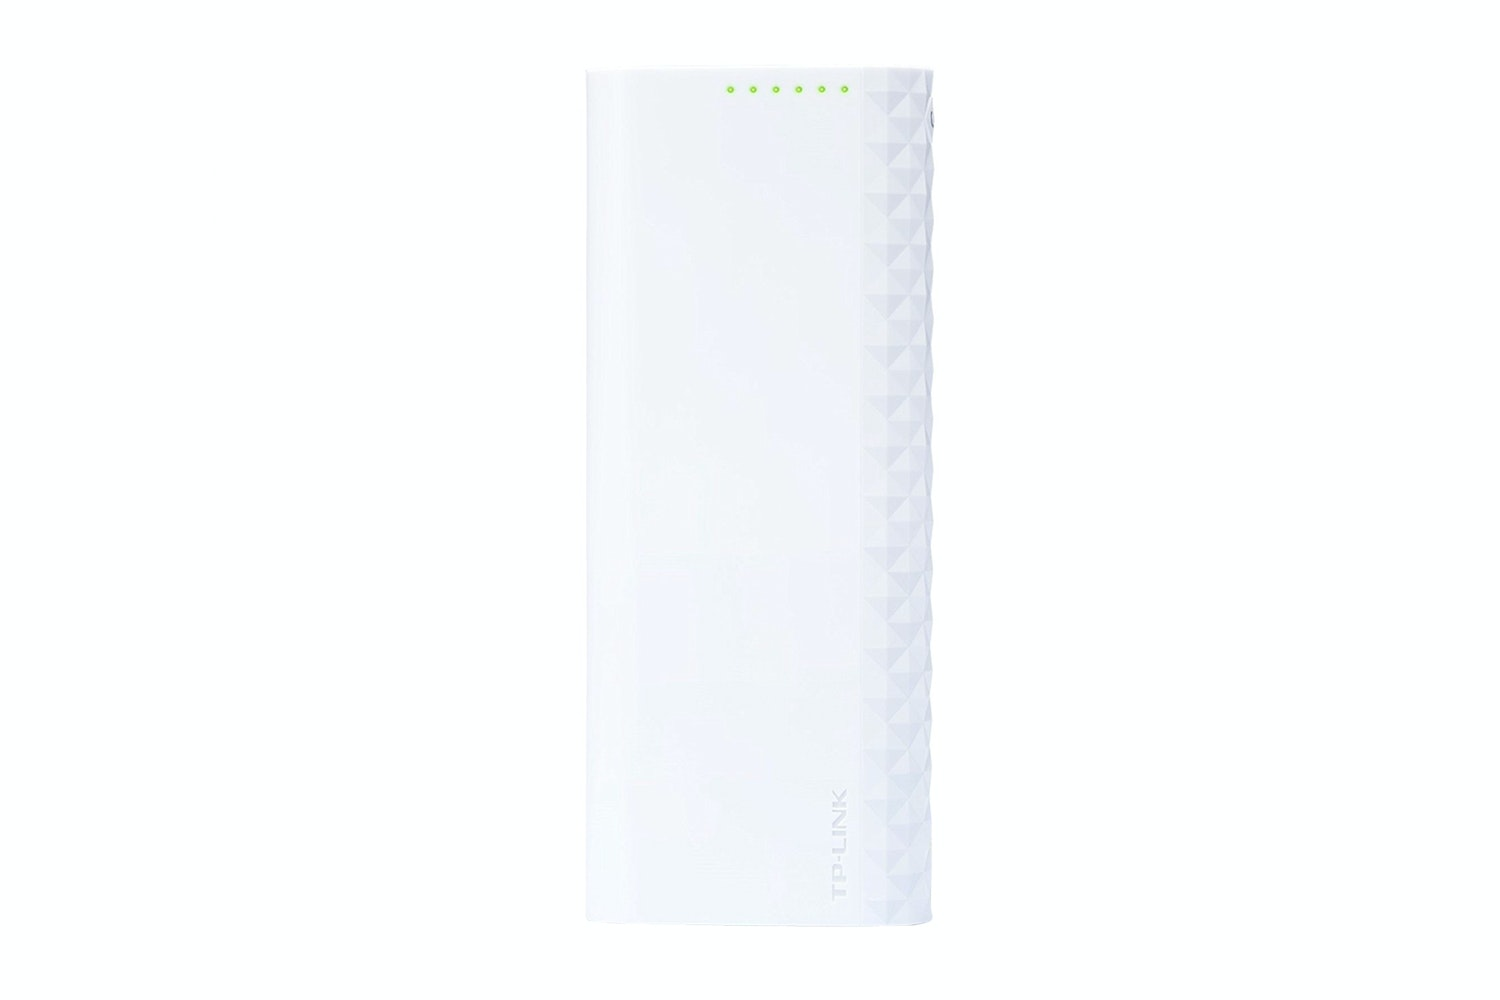 TP-LINK 15600mAh Power bank